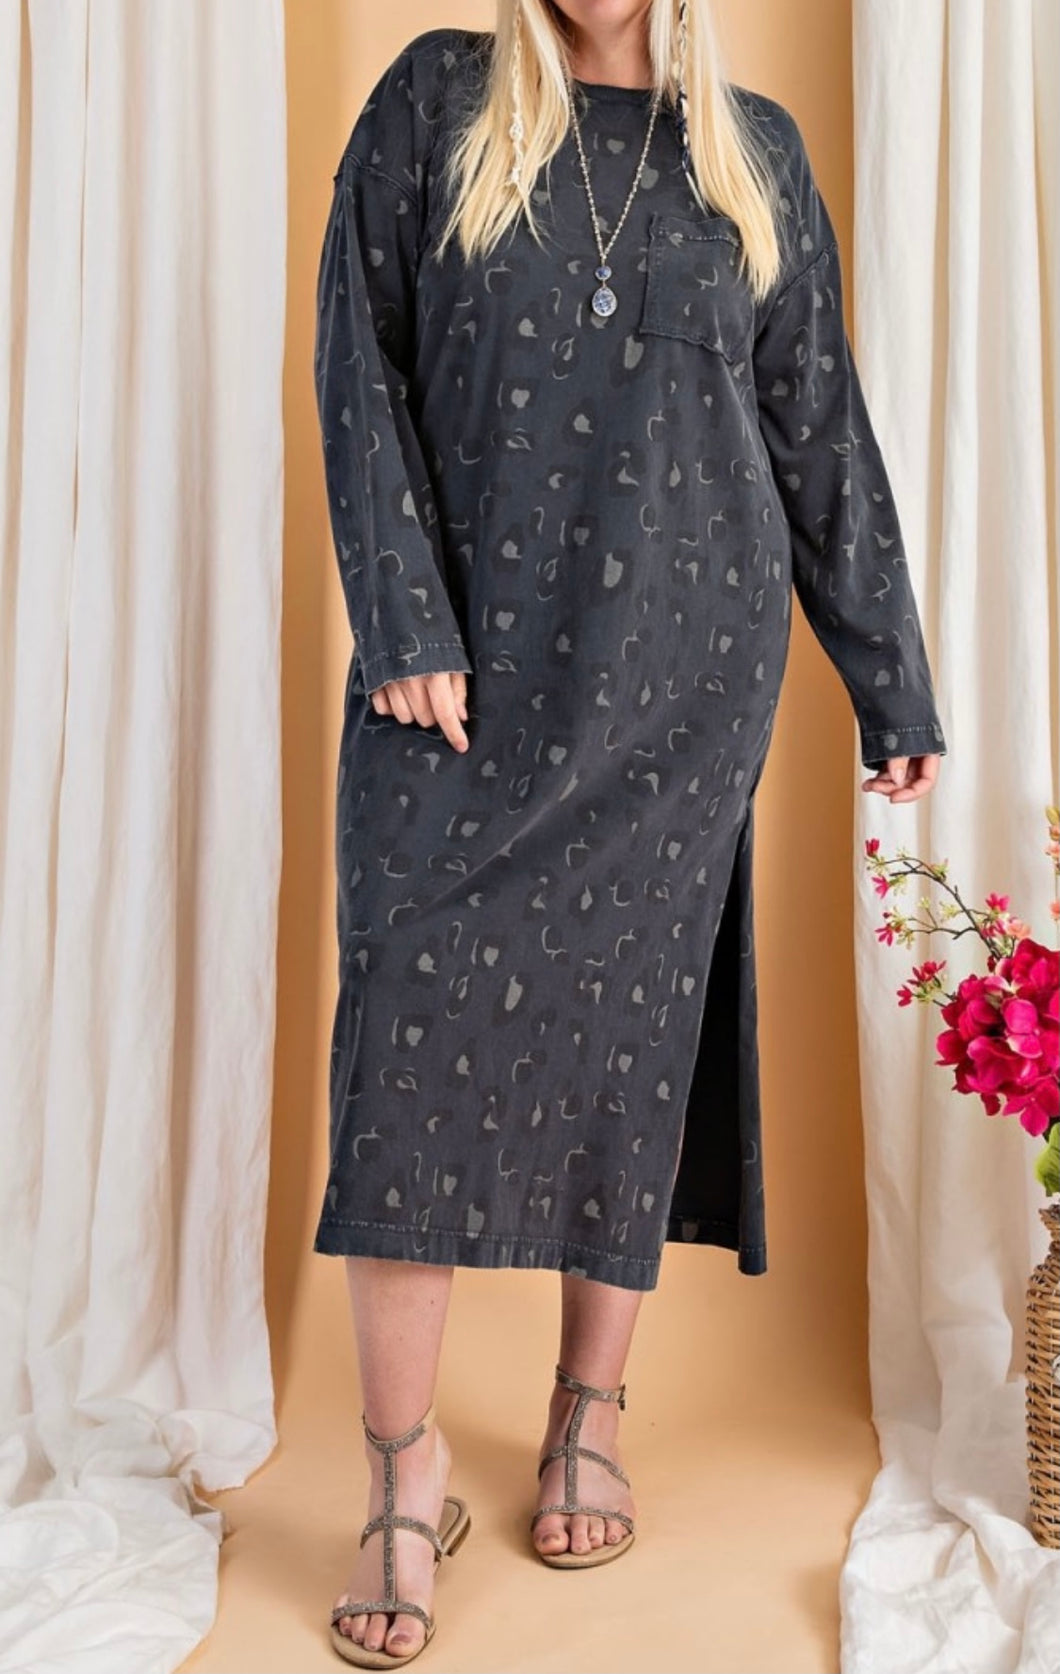 PLUS SIZE Leopard Print Tunic Dress - Charcoal Black